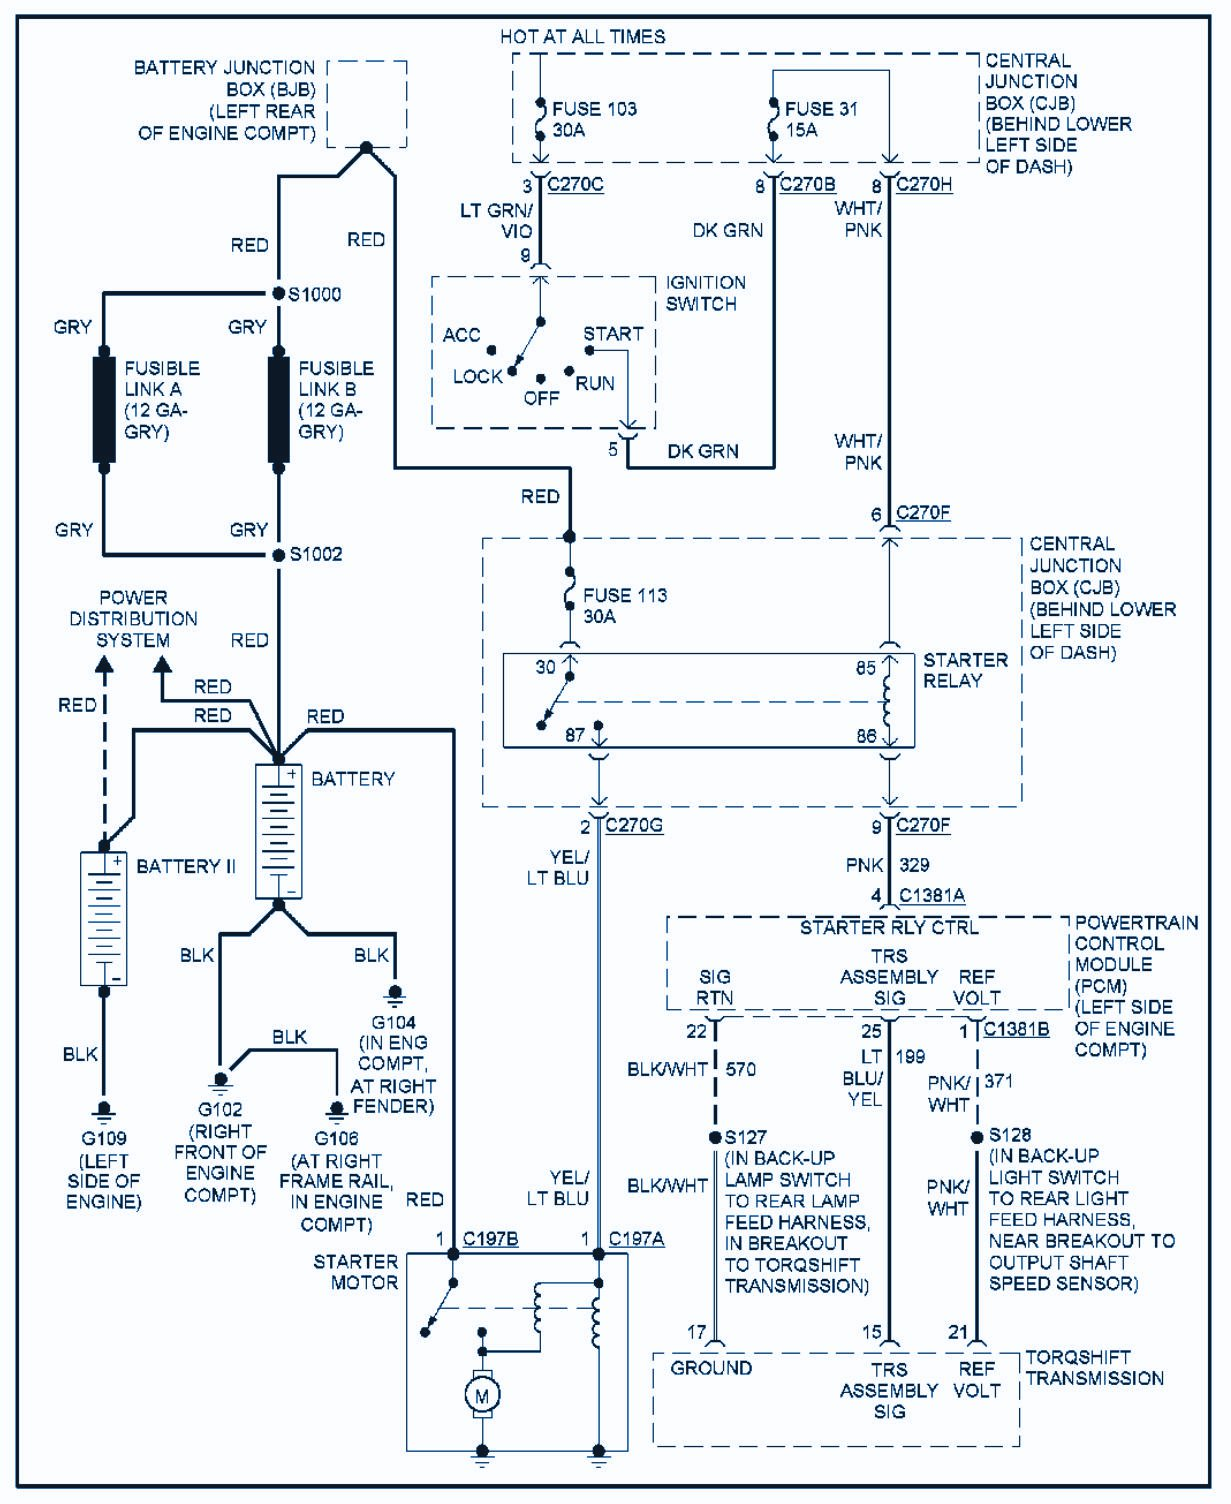 diagram] 2015 ford f 350 wiring diagram full version hd quality wiring  diagram - loth-diagram.expertsuniversity.it  diagram database - expertsuniversity.it